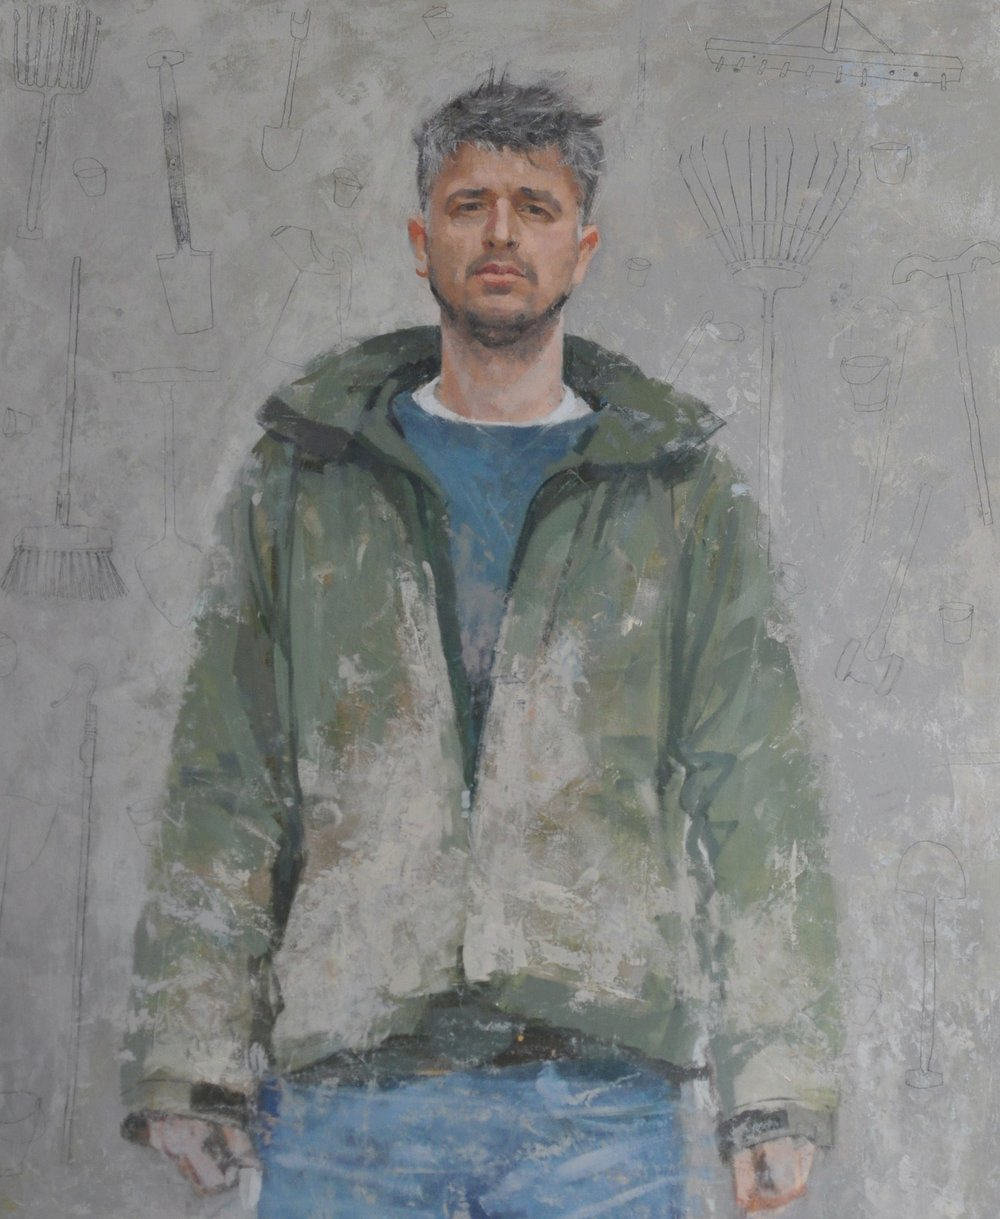 SPA 2017 Exhibition, Jonah of Kittyfield Farm, 96 x 106 cm (framed), Oil on board